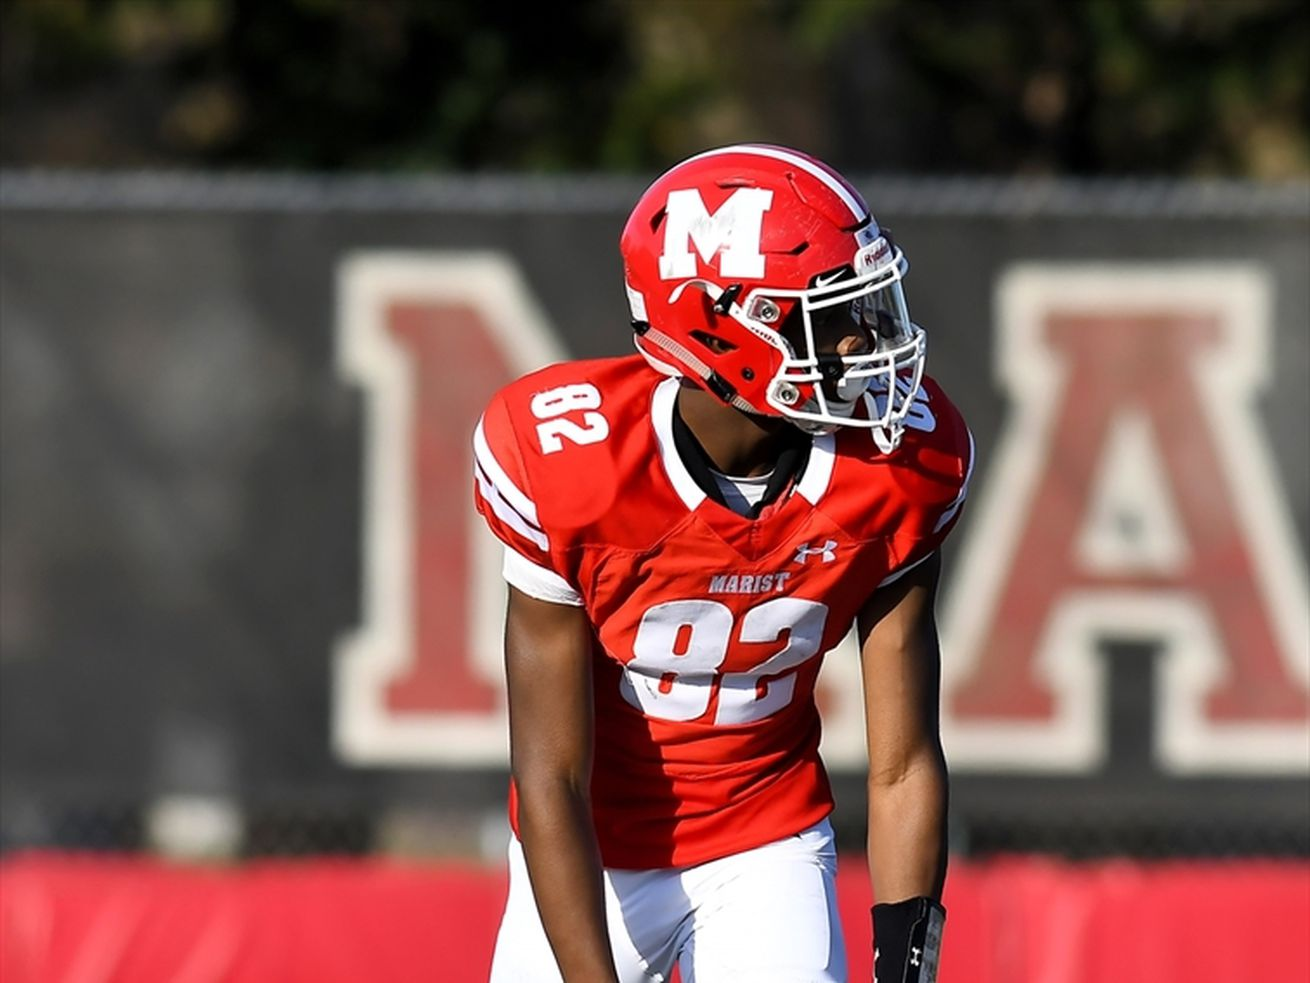 Marist's duo of Carnell Tate, Dontrell Jackson Jr. creating buzz